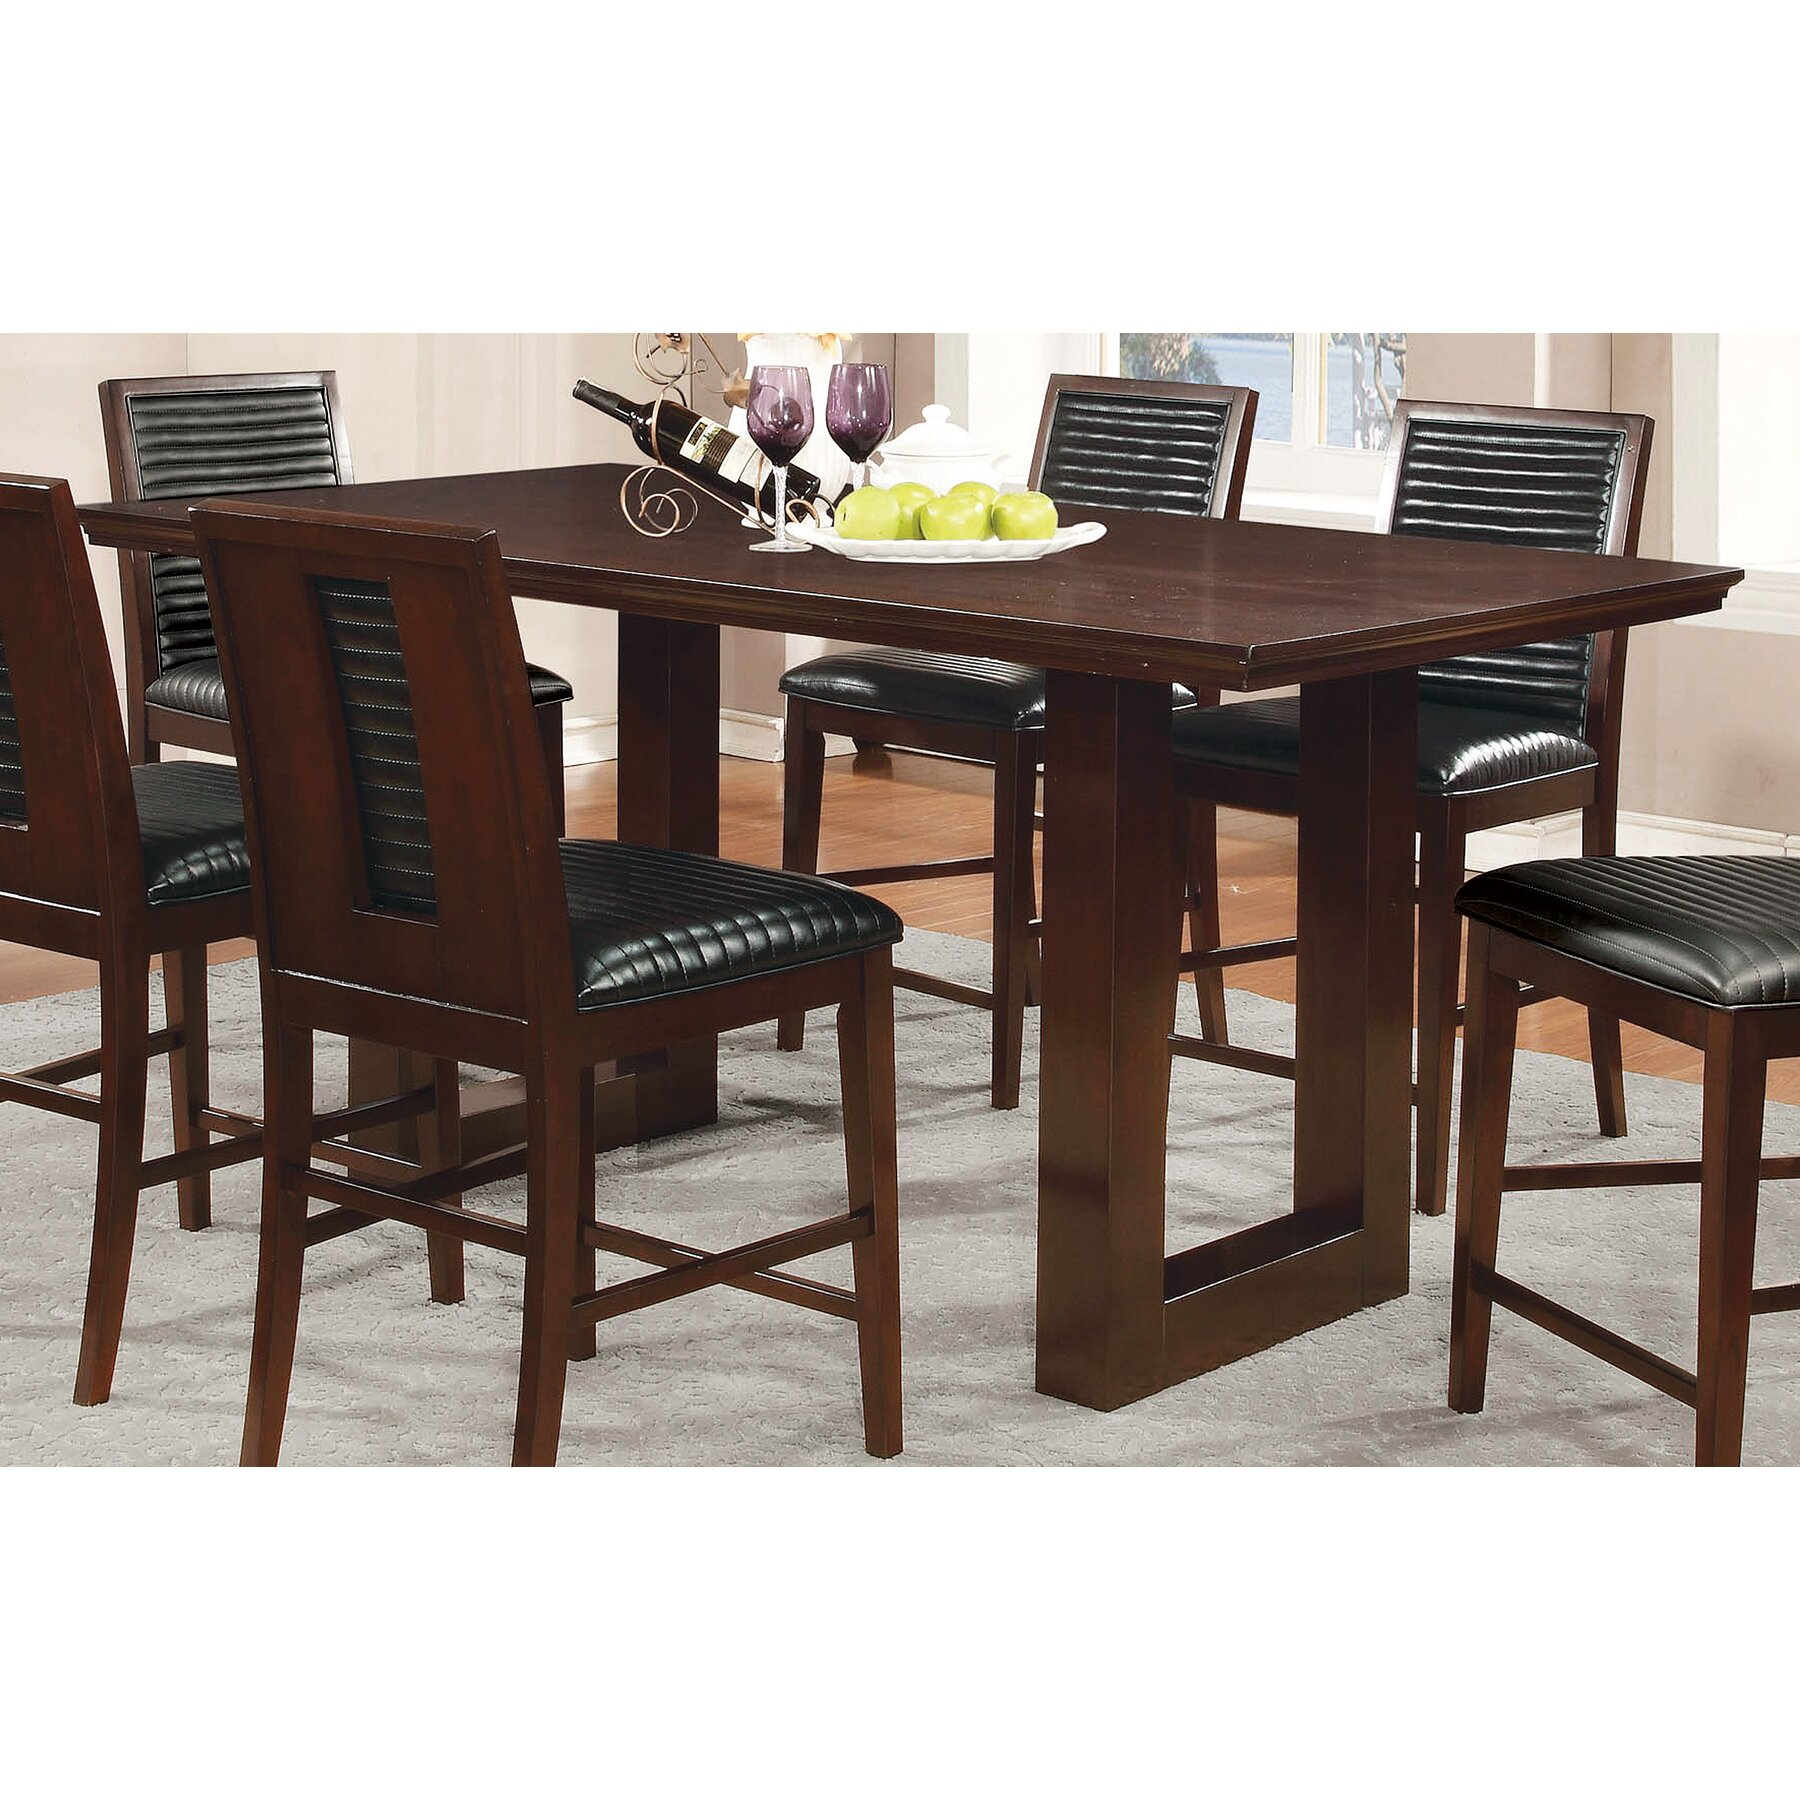 Wildon home chester group counter height dining table for Wayfair dining table